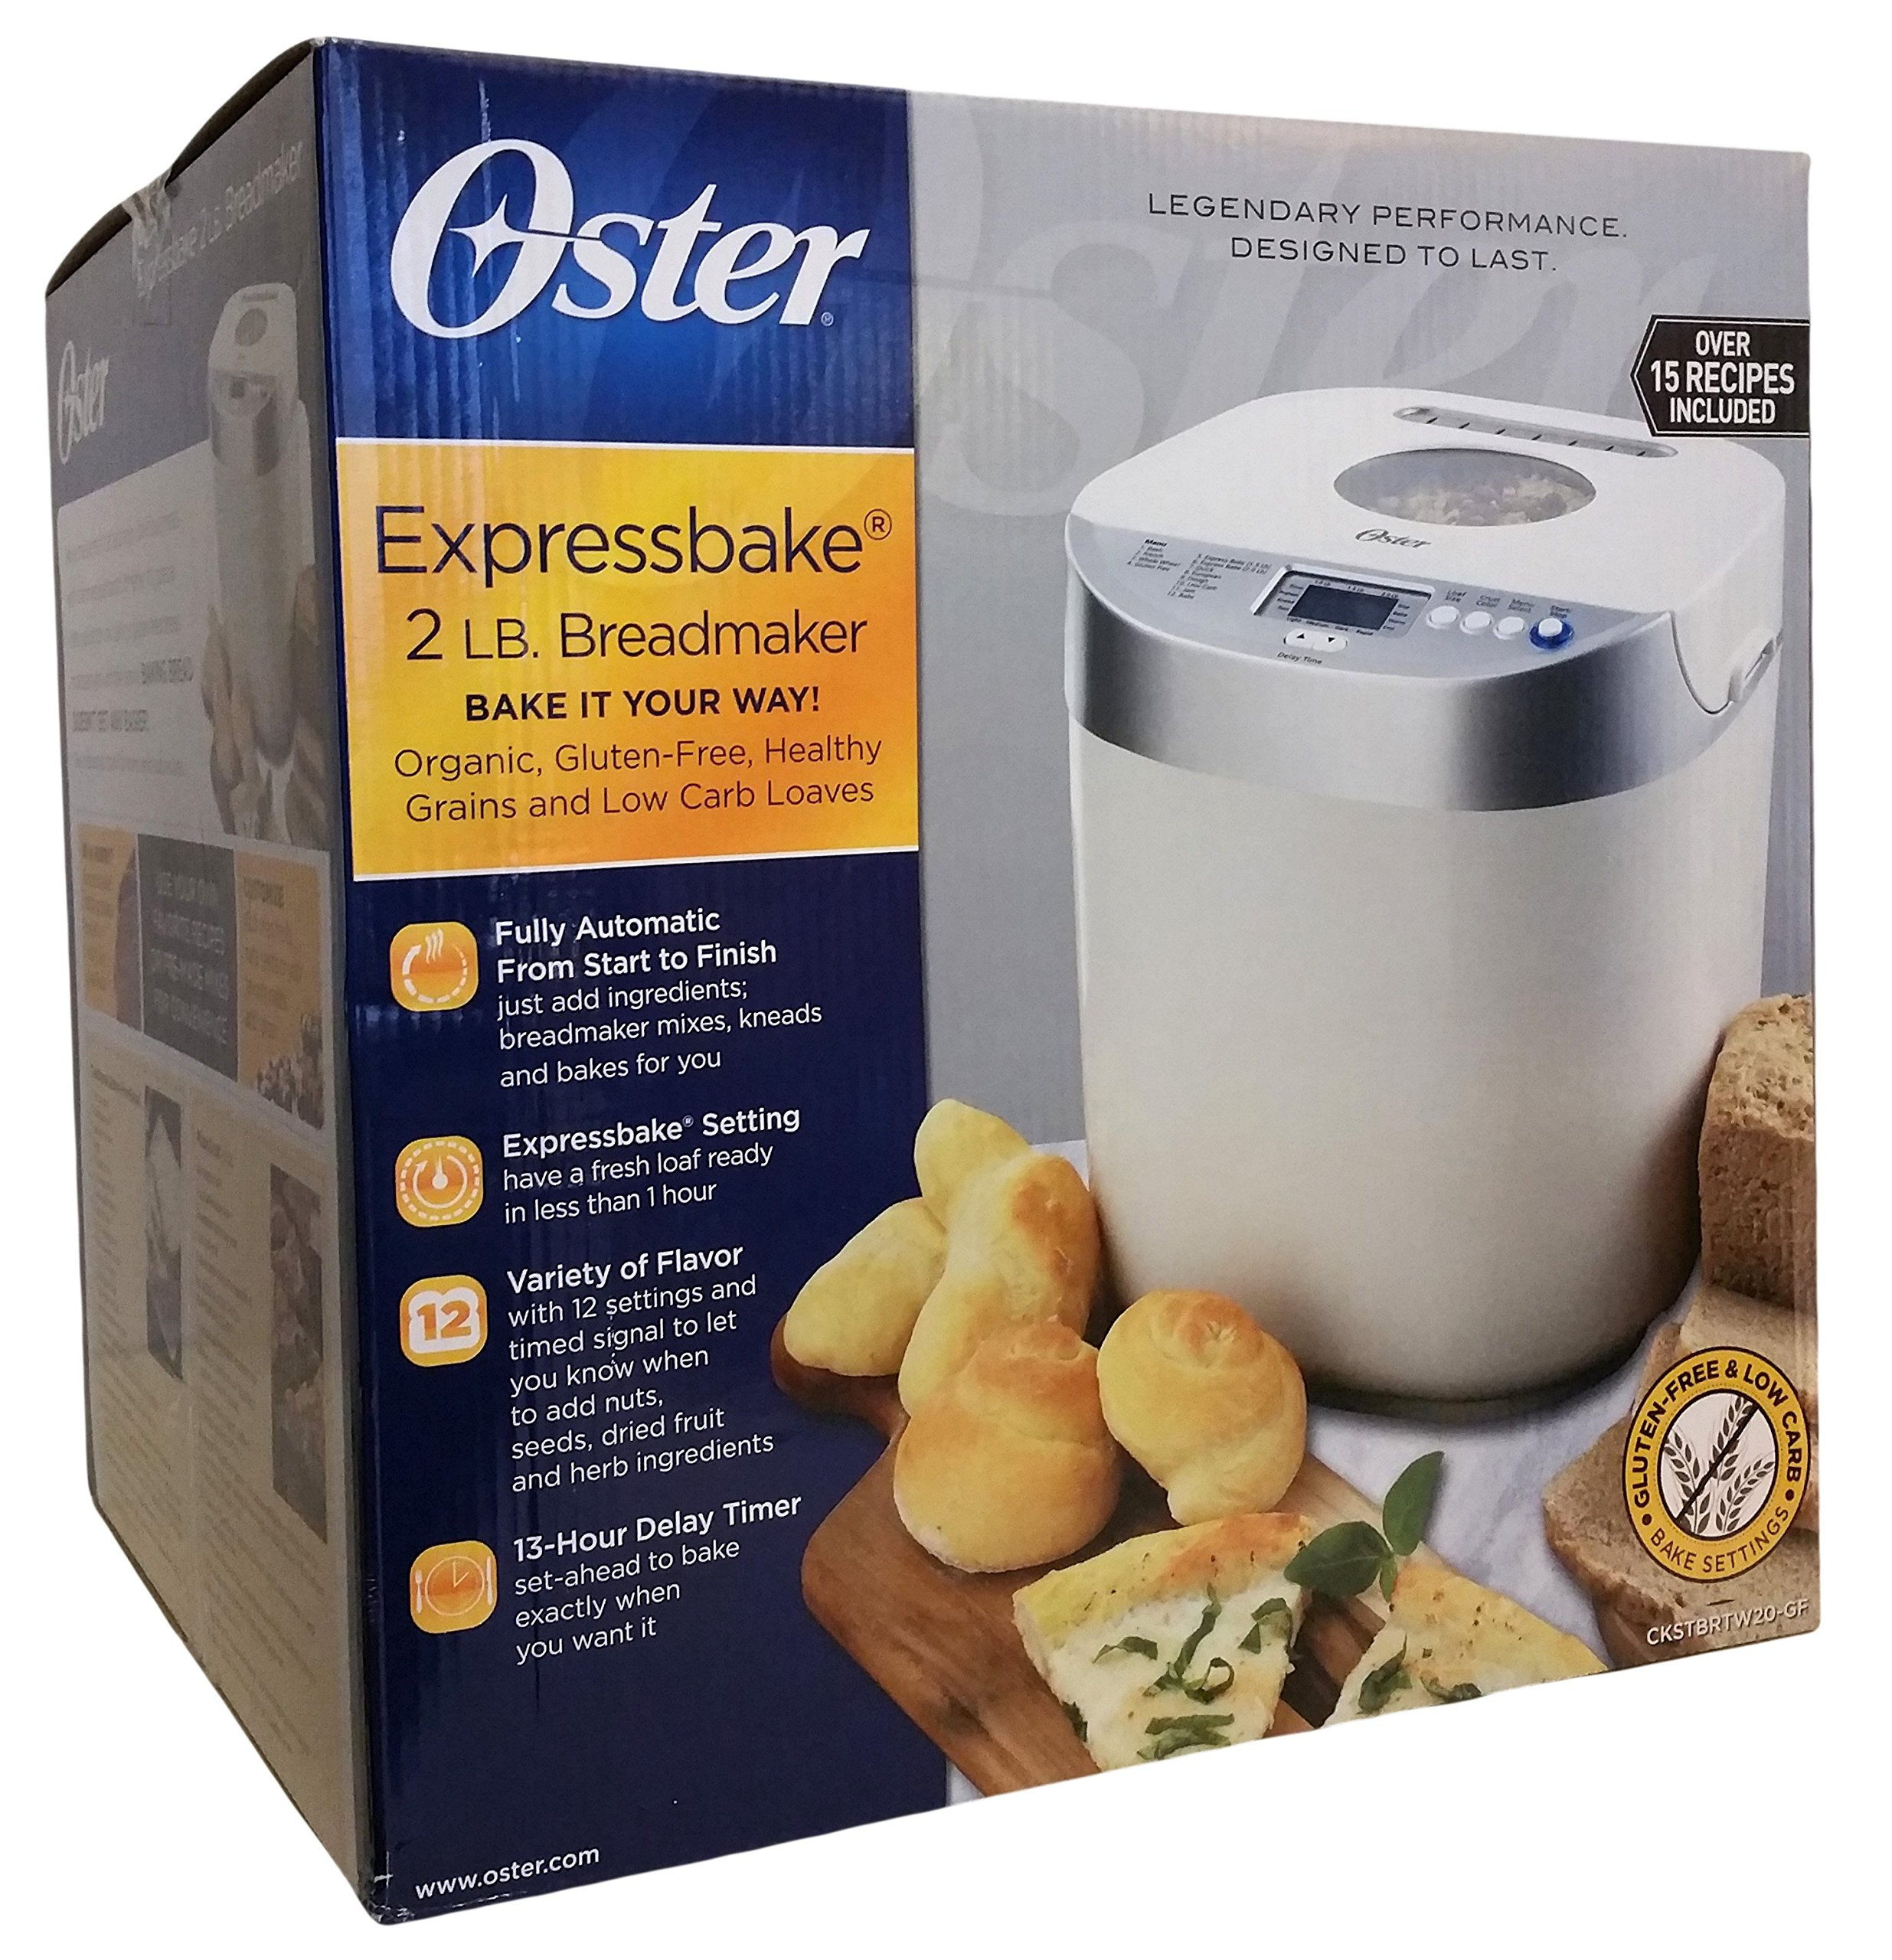 Oster Expressbake 2 LB. Breadmaker with Gluten-Free & Low Carb Settings